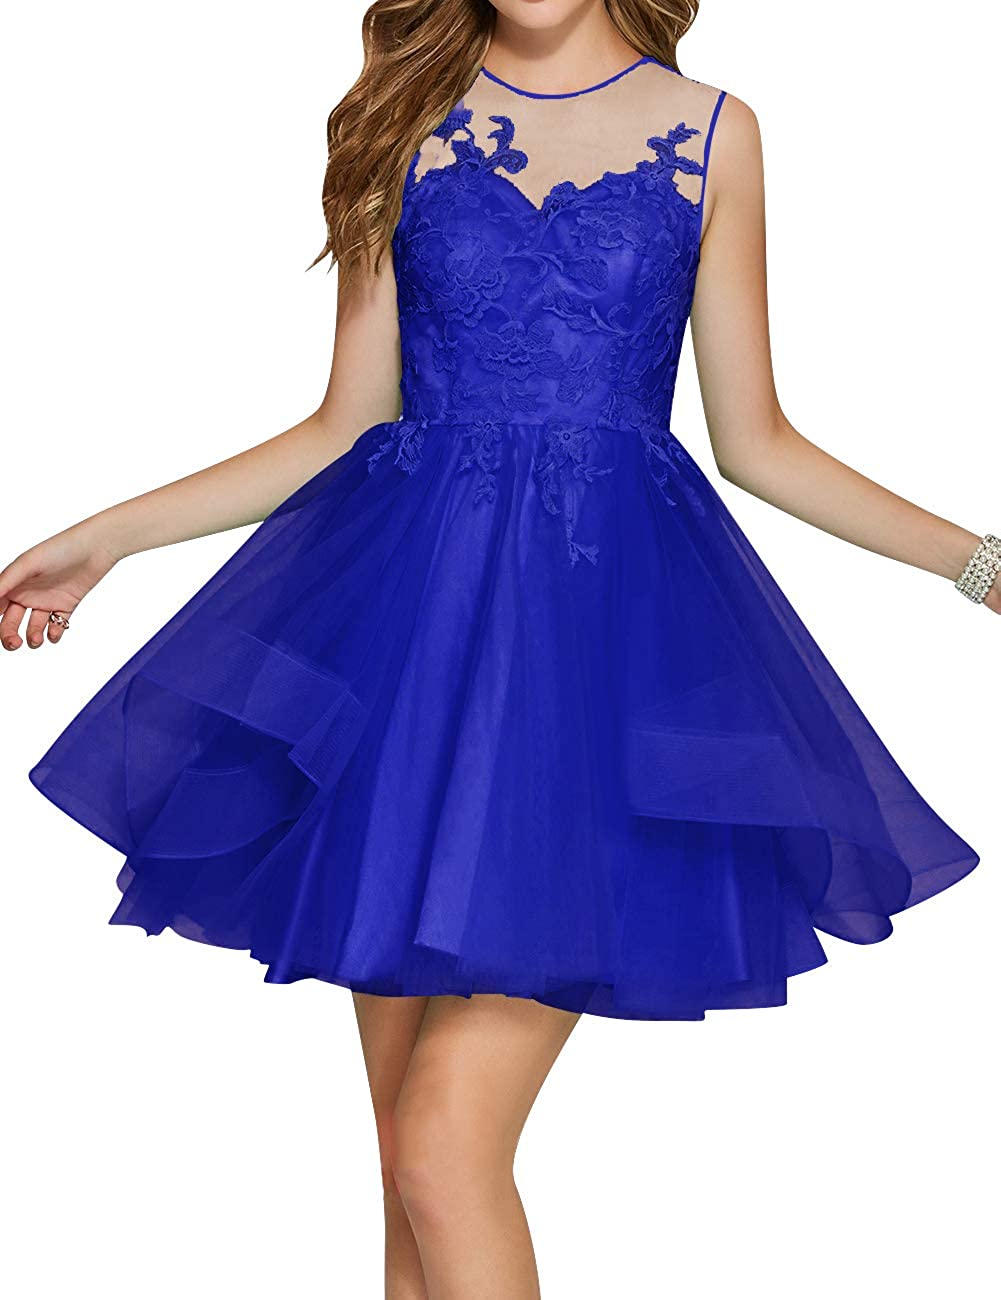 Royal bluee Uther Junior Tulle Prom Homecoming Cocktail Dresses Short Scoop Neck Bridesmaid Dress